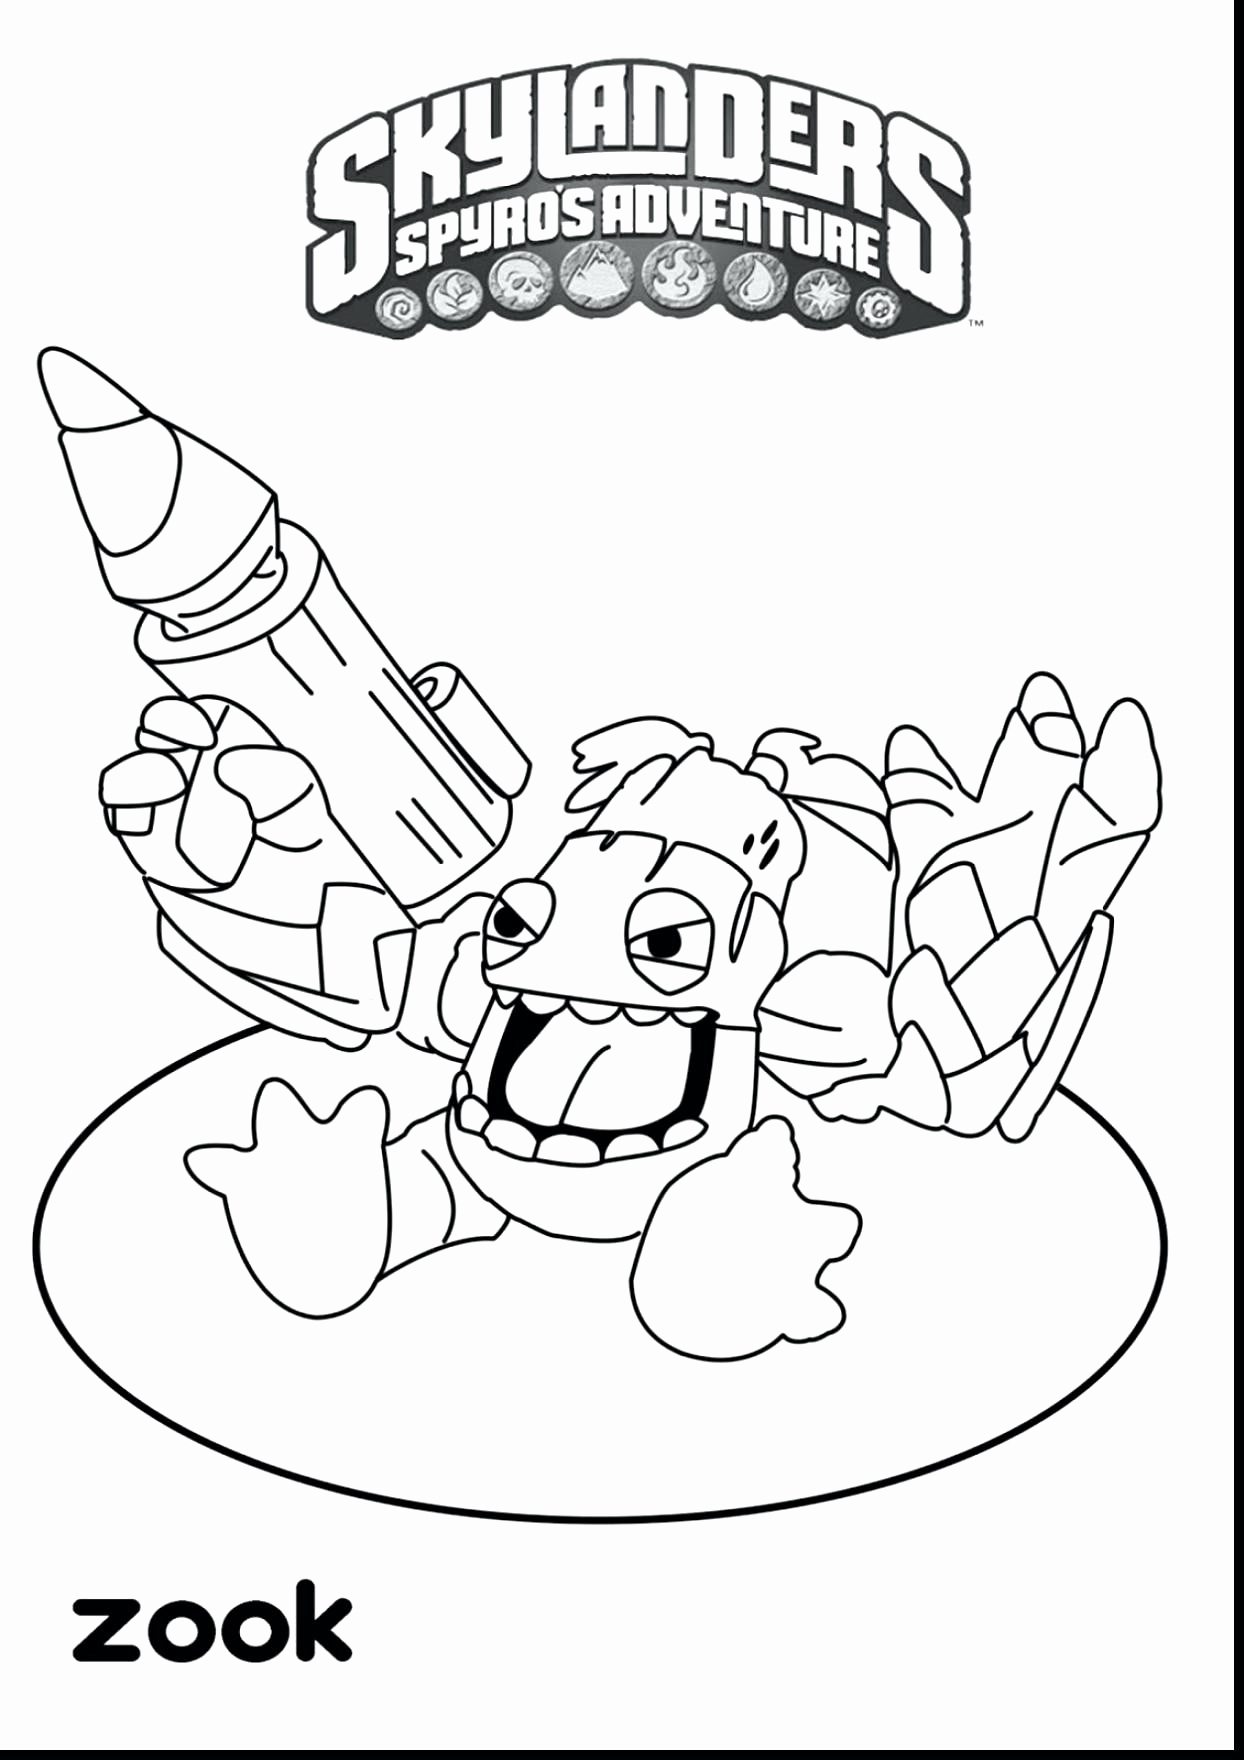 donkey ollie coloring pages Download-New Donkey Ollie Coloring Pages 7-f